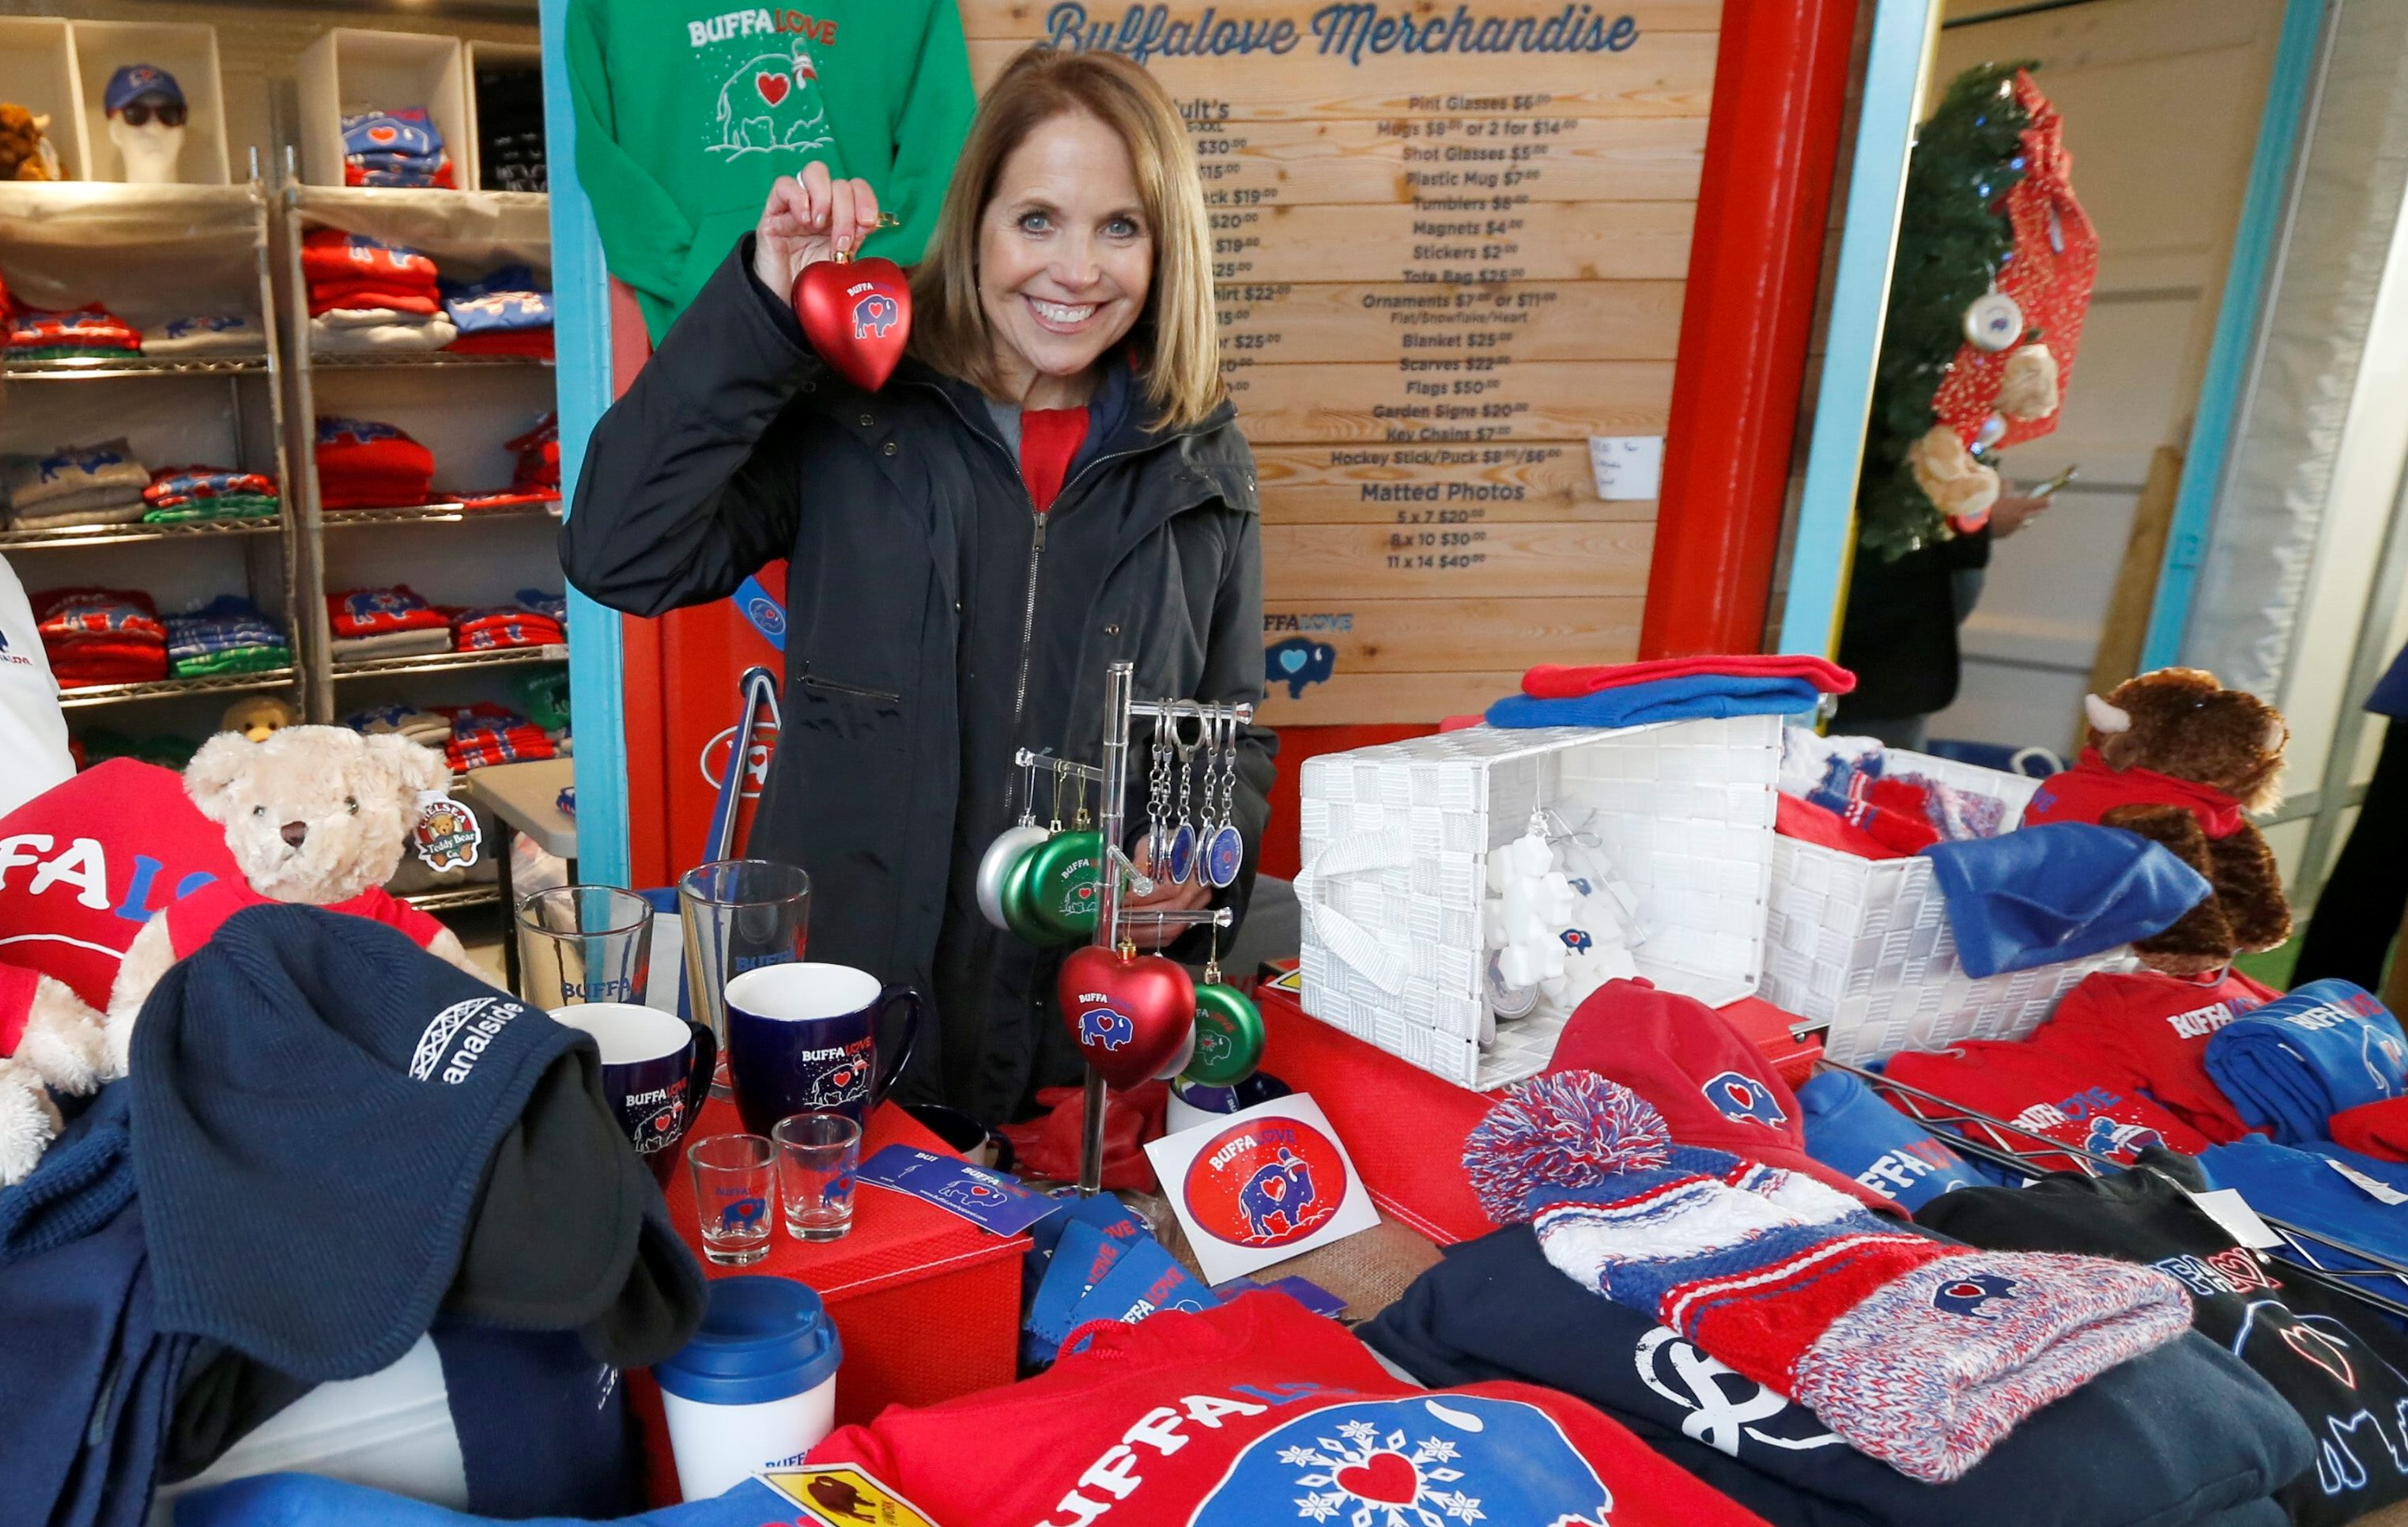 Katie Couric visited Canalside on Jan. 5, 2016. (Robert Kirkham/Buffalo News)